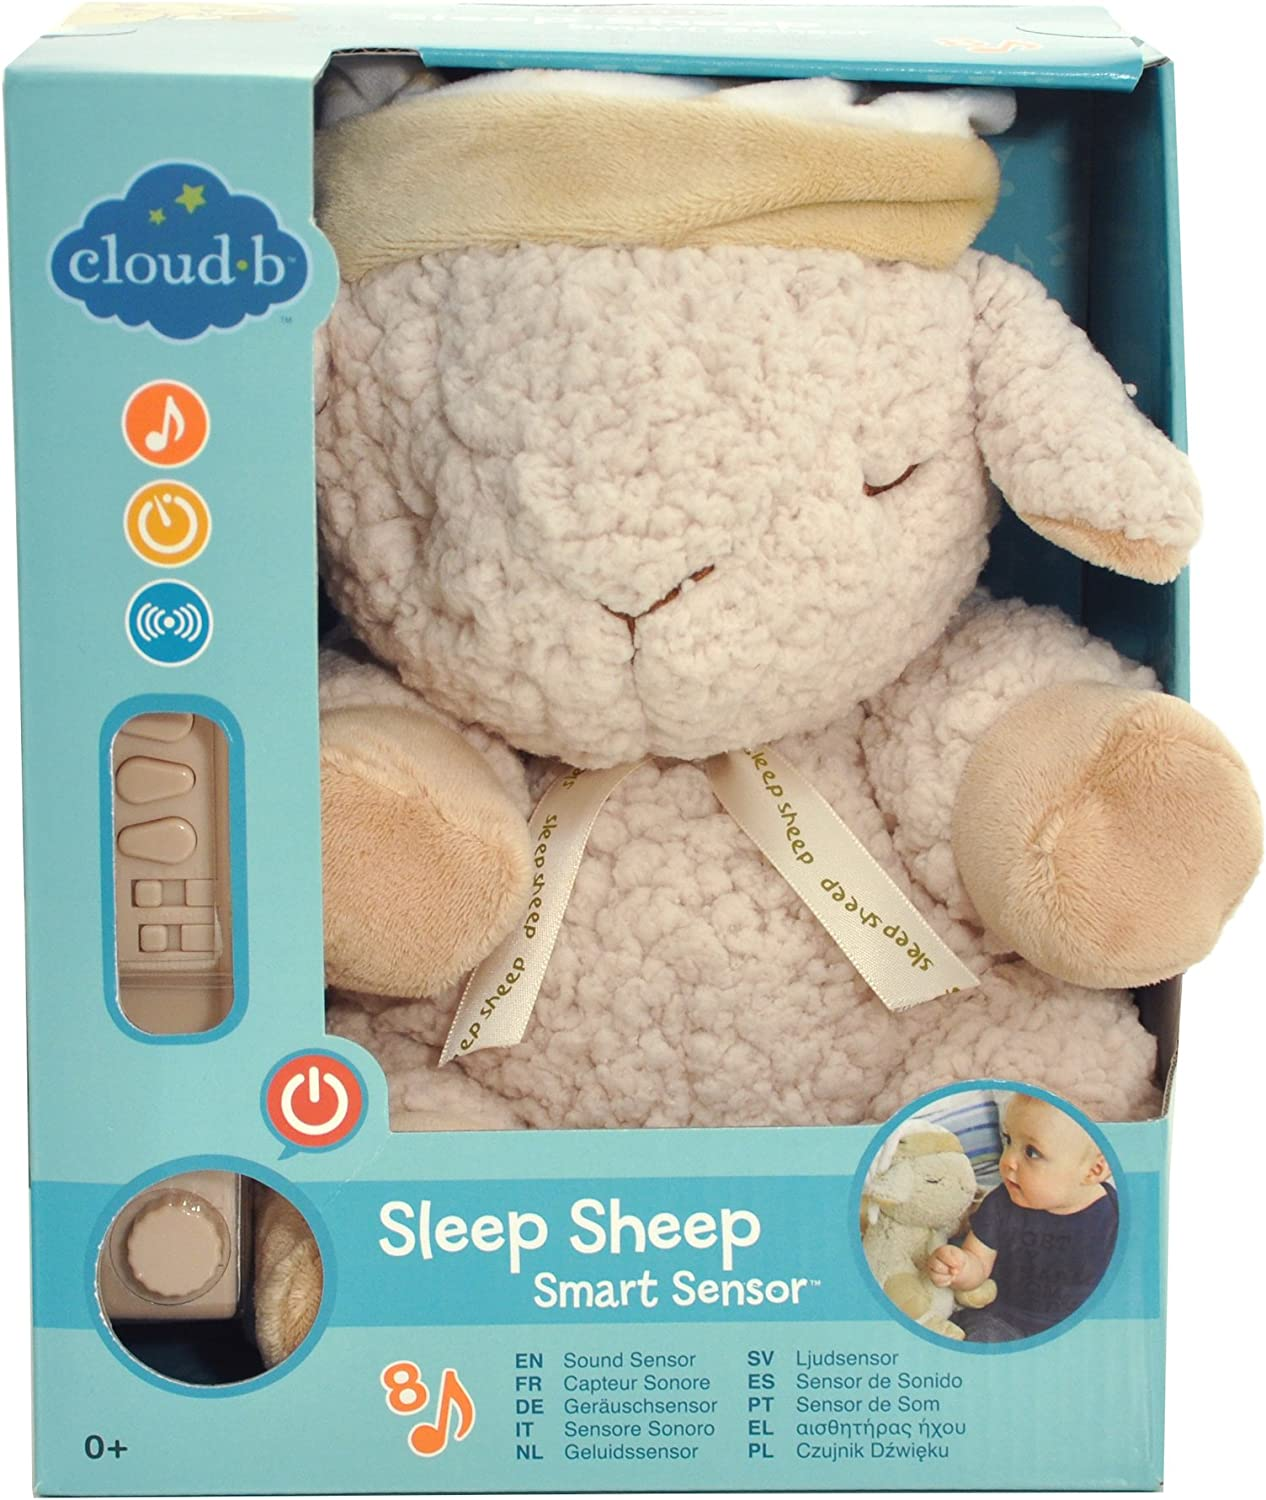 Sound Sensing Sleep Sheep